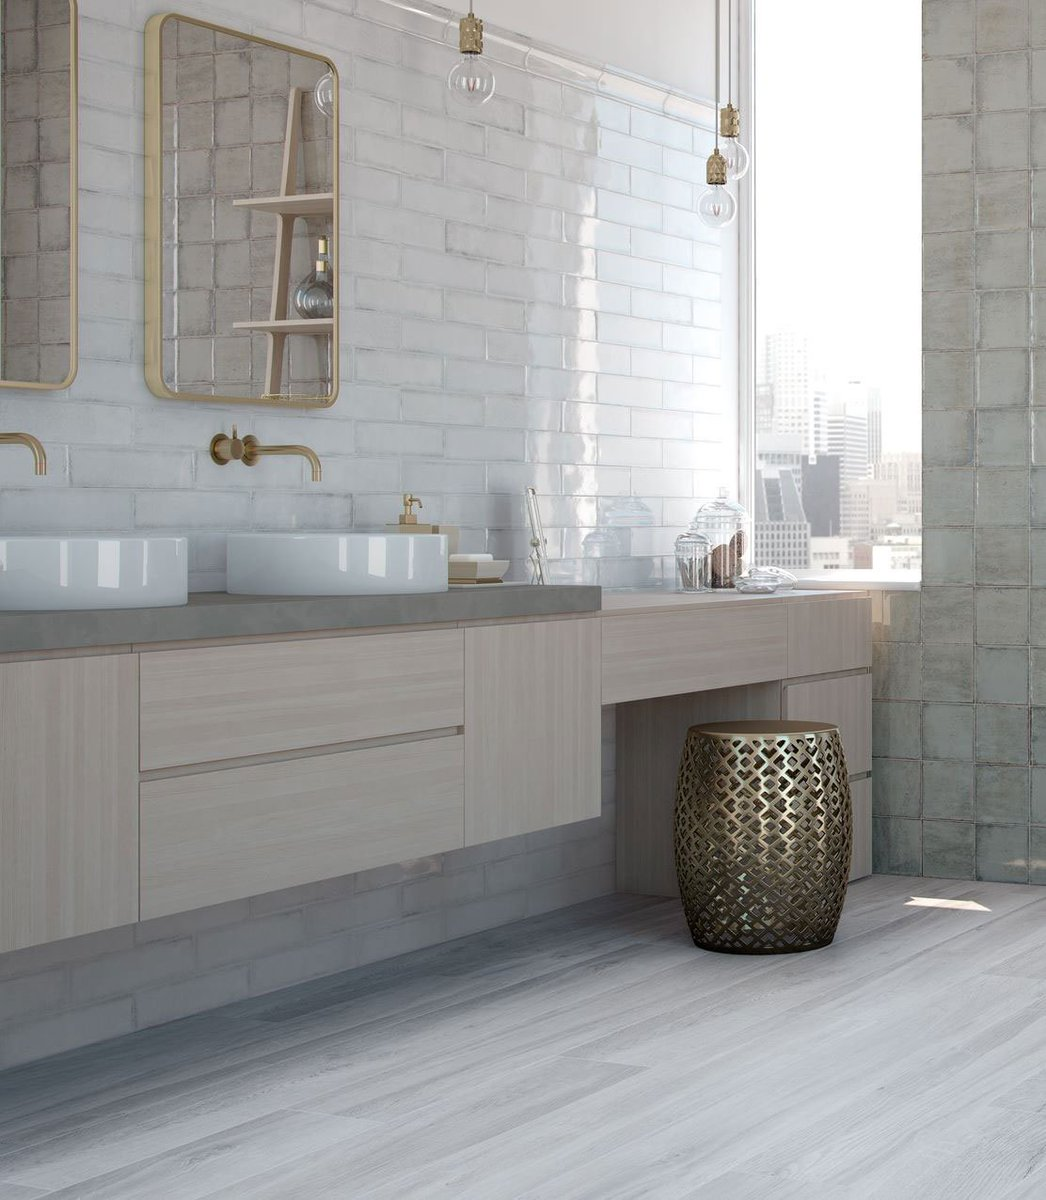 London Tile Co On Twitter Combine Vintage White Wall Tiles With